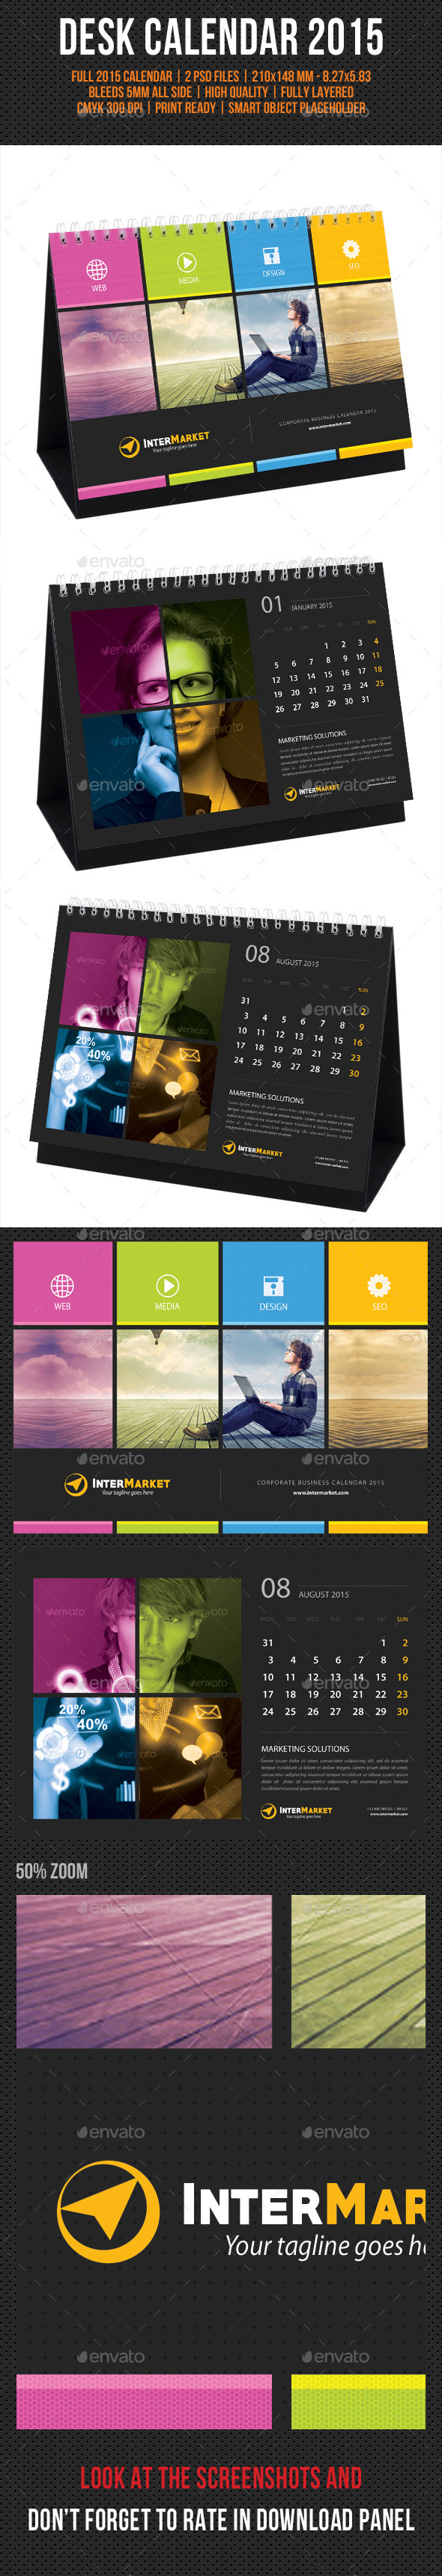 GraphicRiver Corporate Desk Calendar 2015 V03 9636567